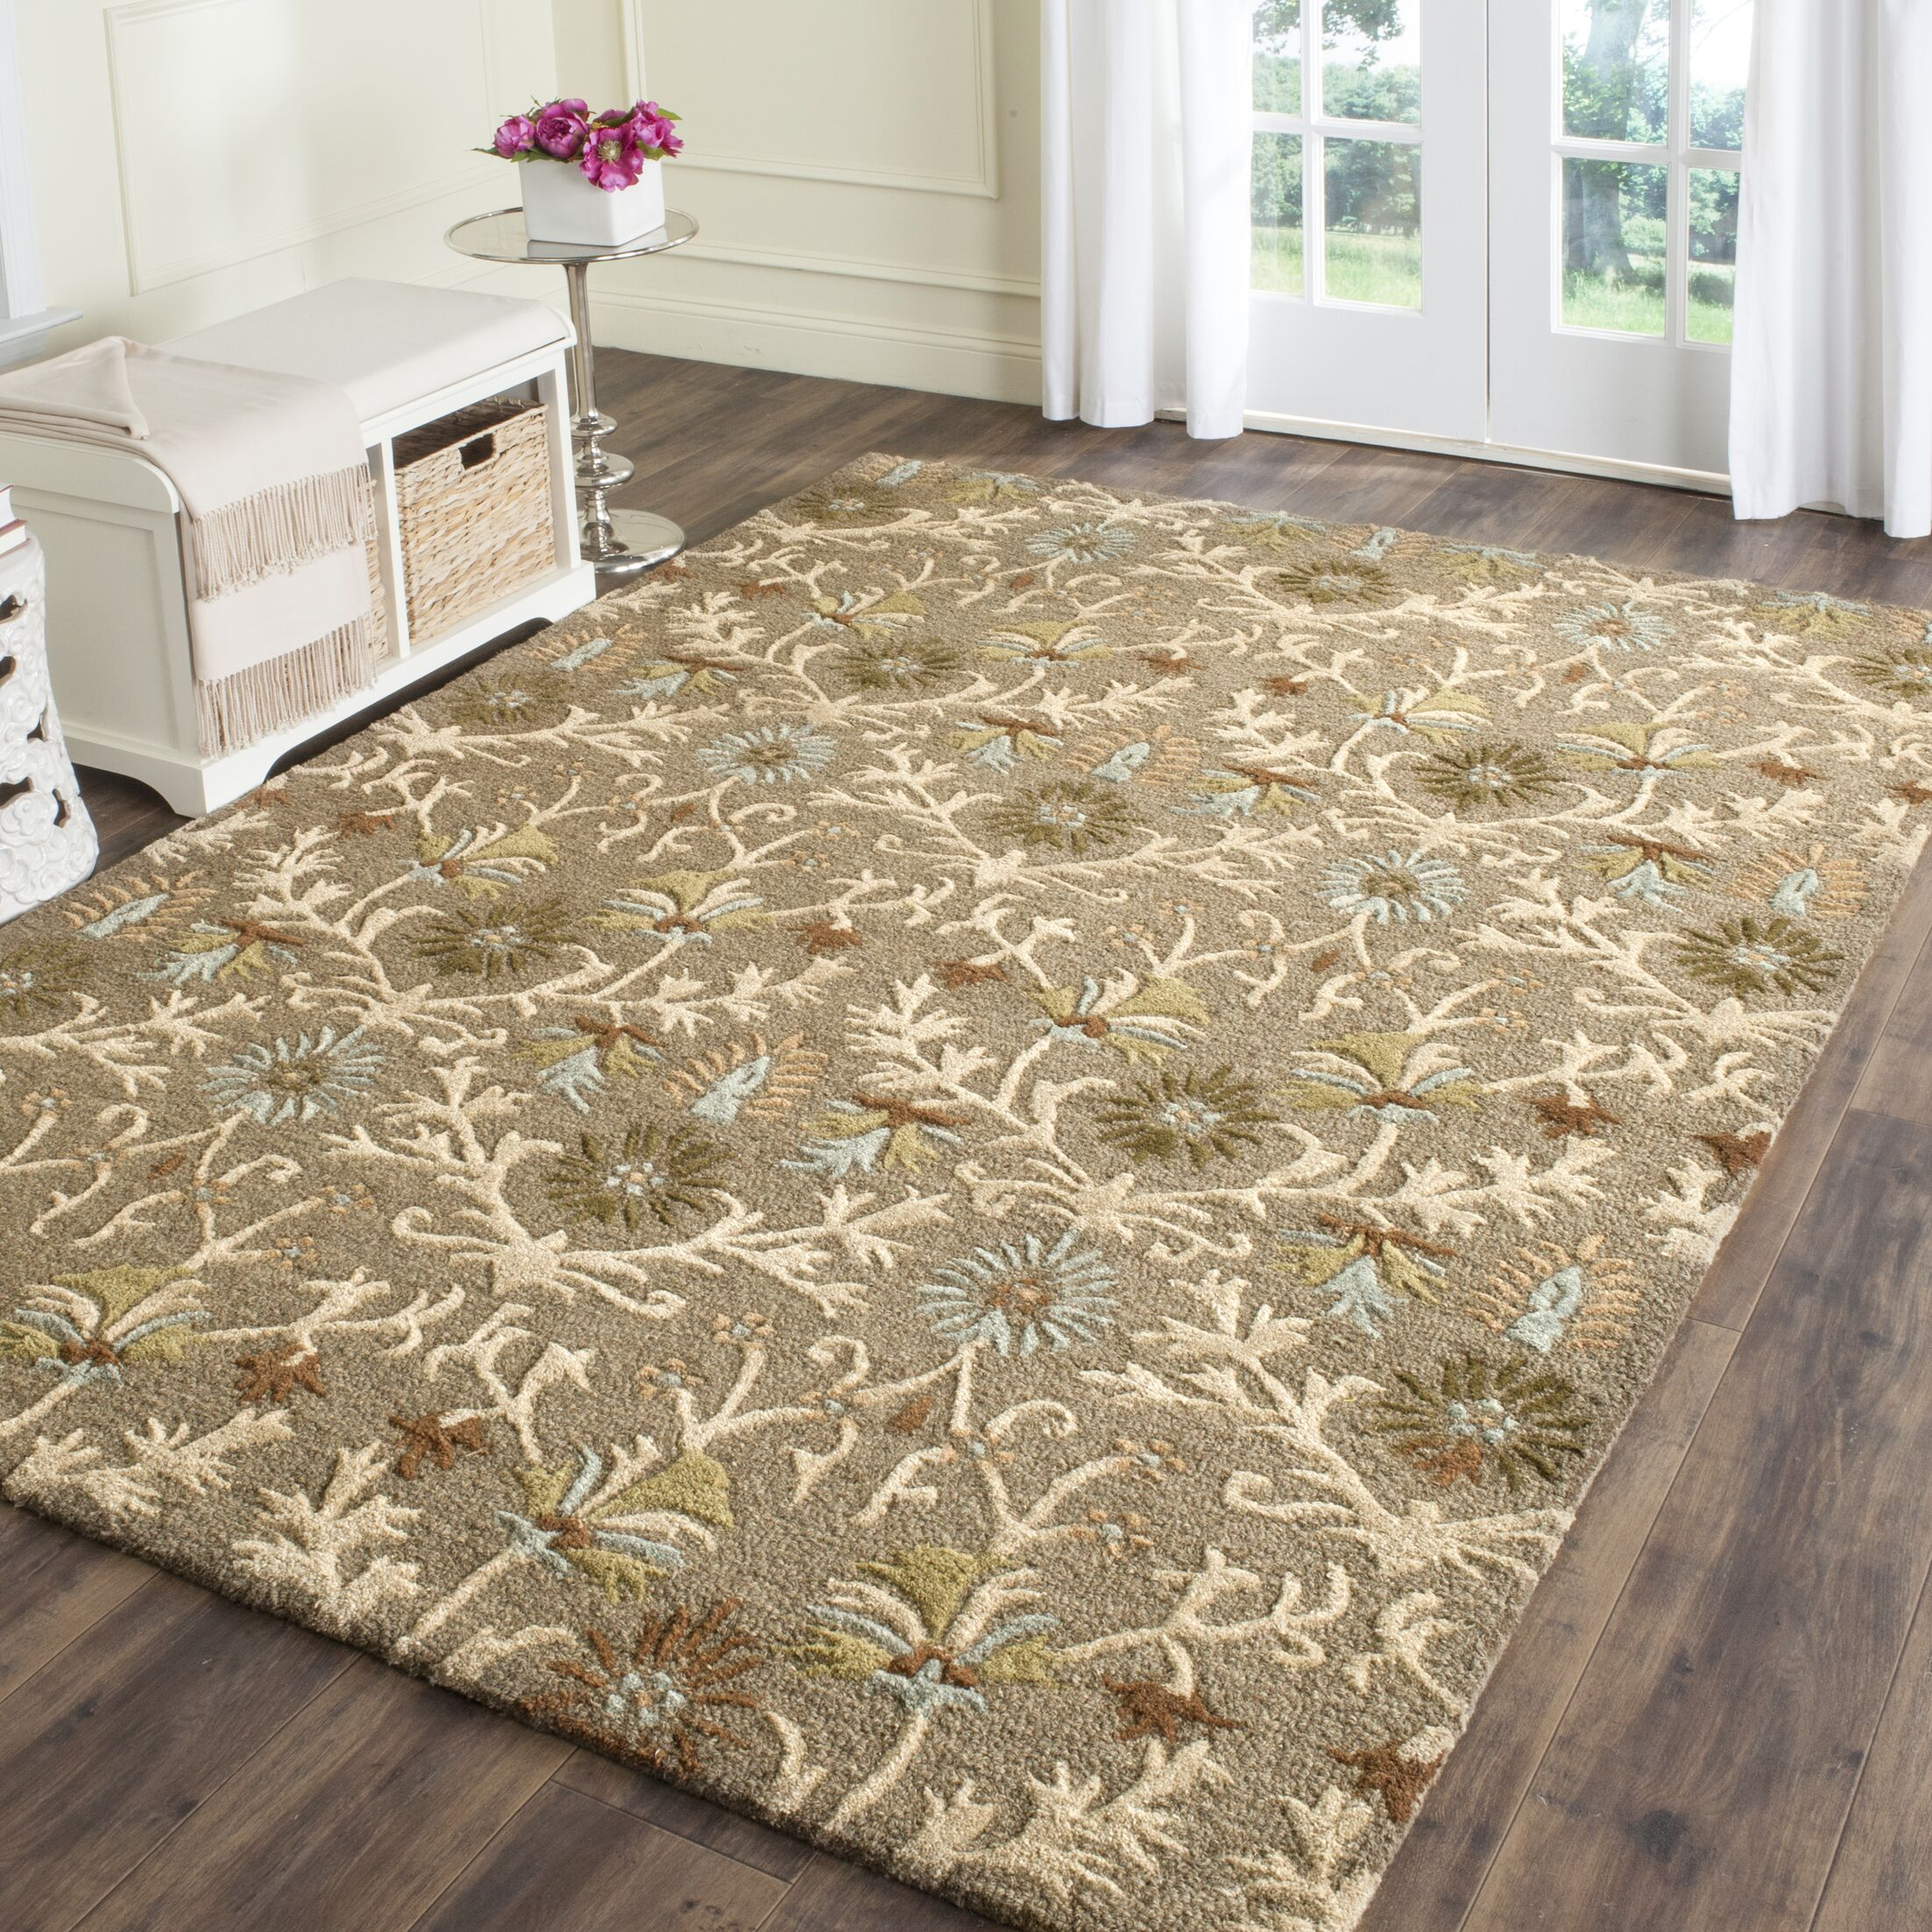 Parker Lane Hand-Tufted Wool Moss/Beige Area Rug Rug Size: Rectangle 10' x 14'